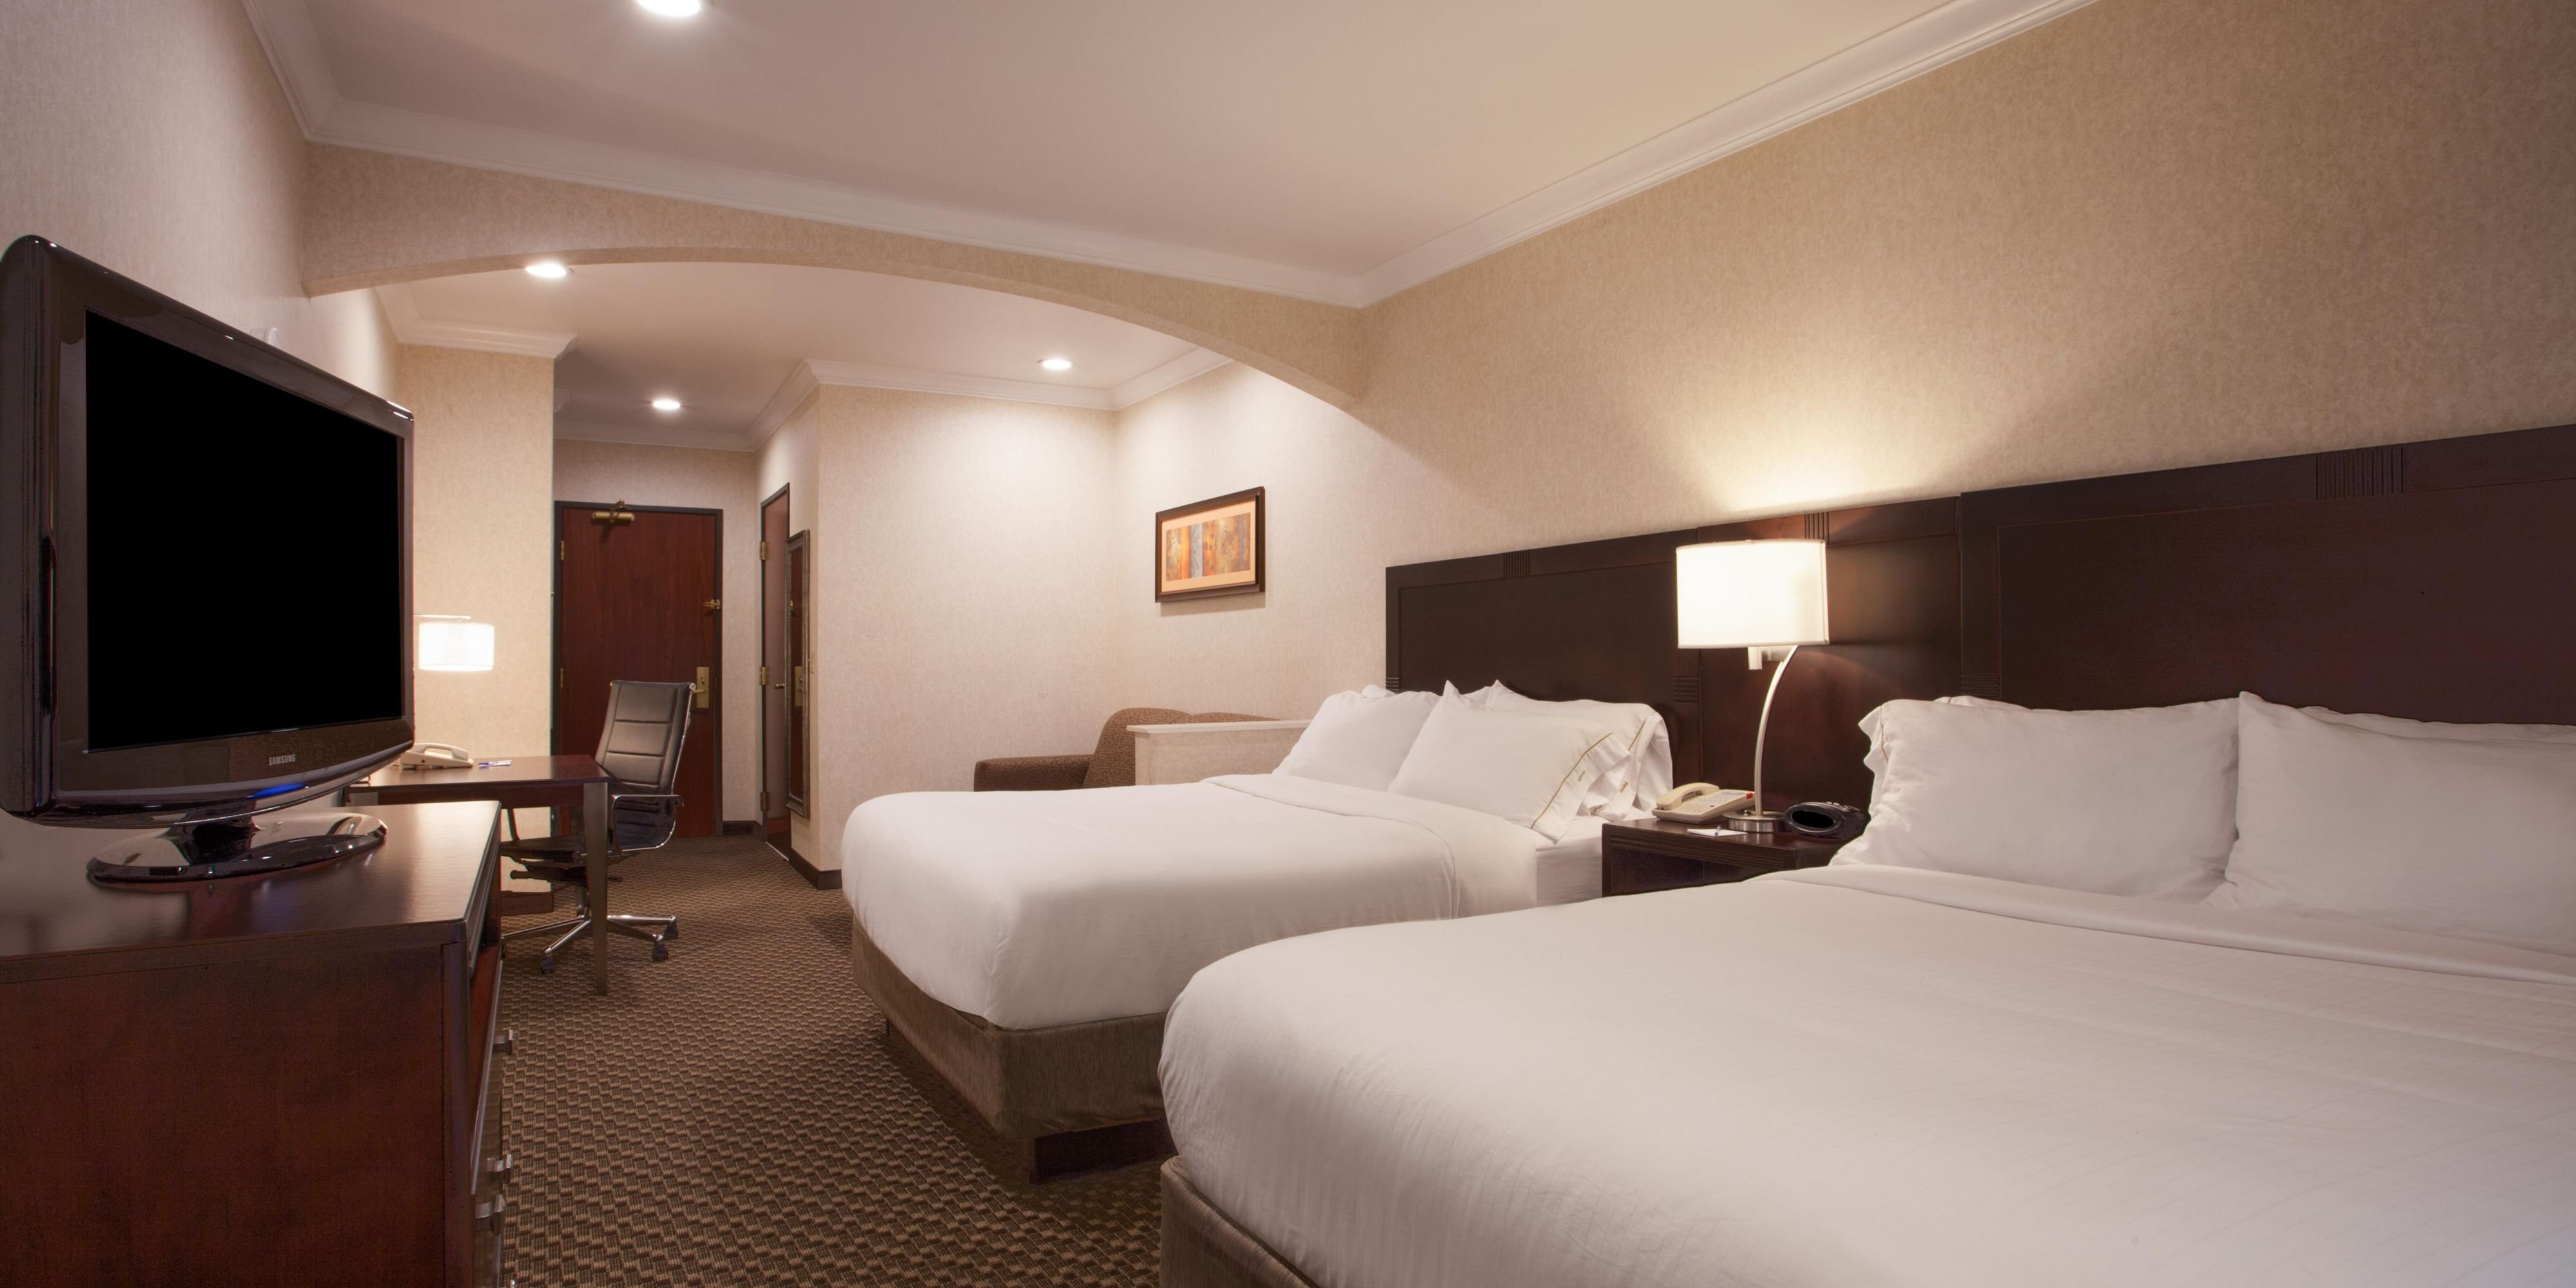 holiday-inn-express-and-suites-davis-4100982109-2x1